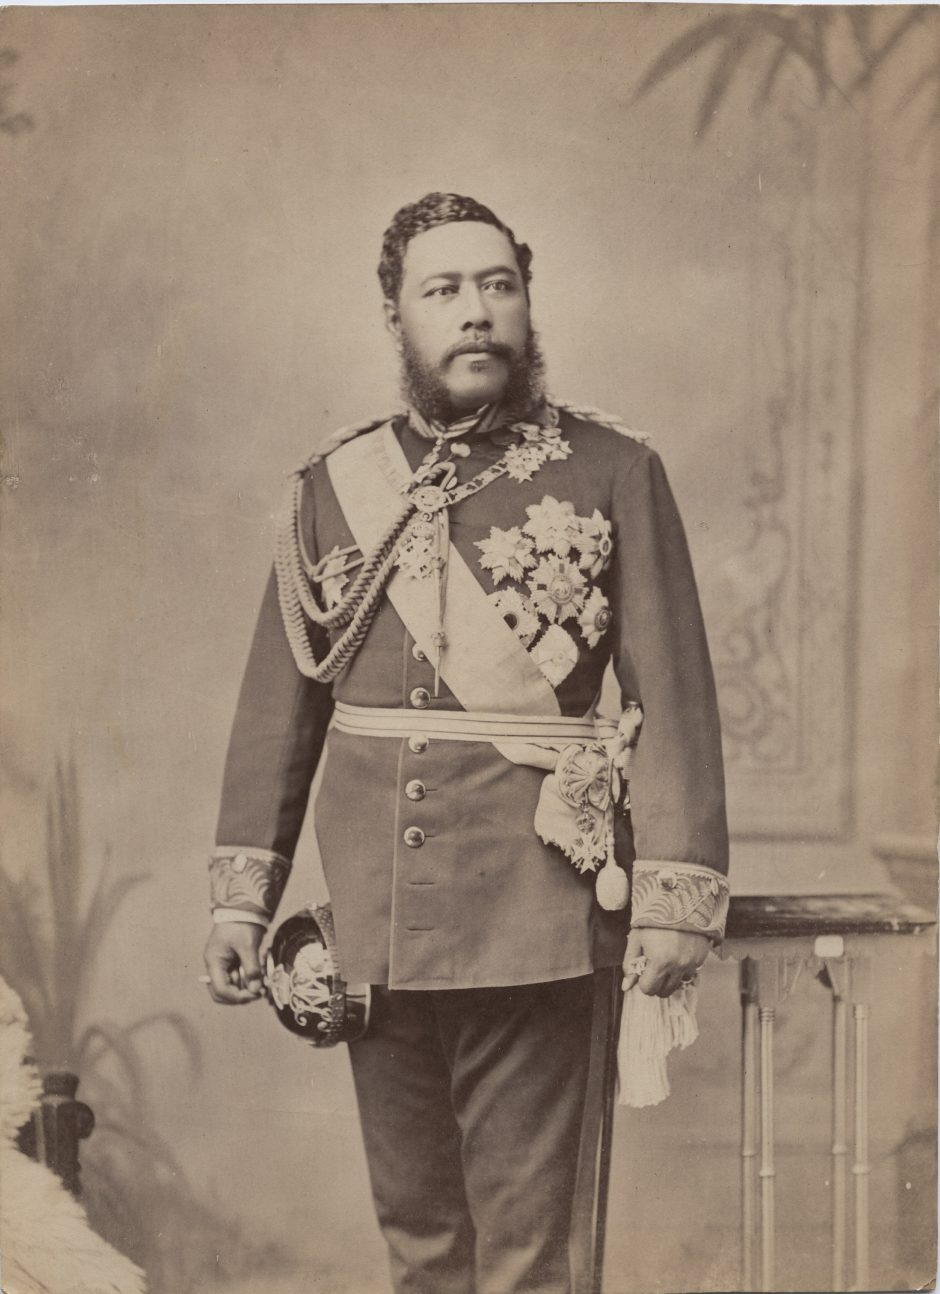 Portrait of King David Kalakaua, Hawaii